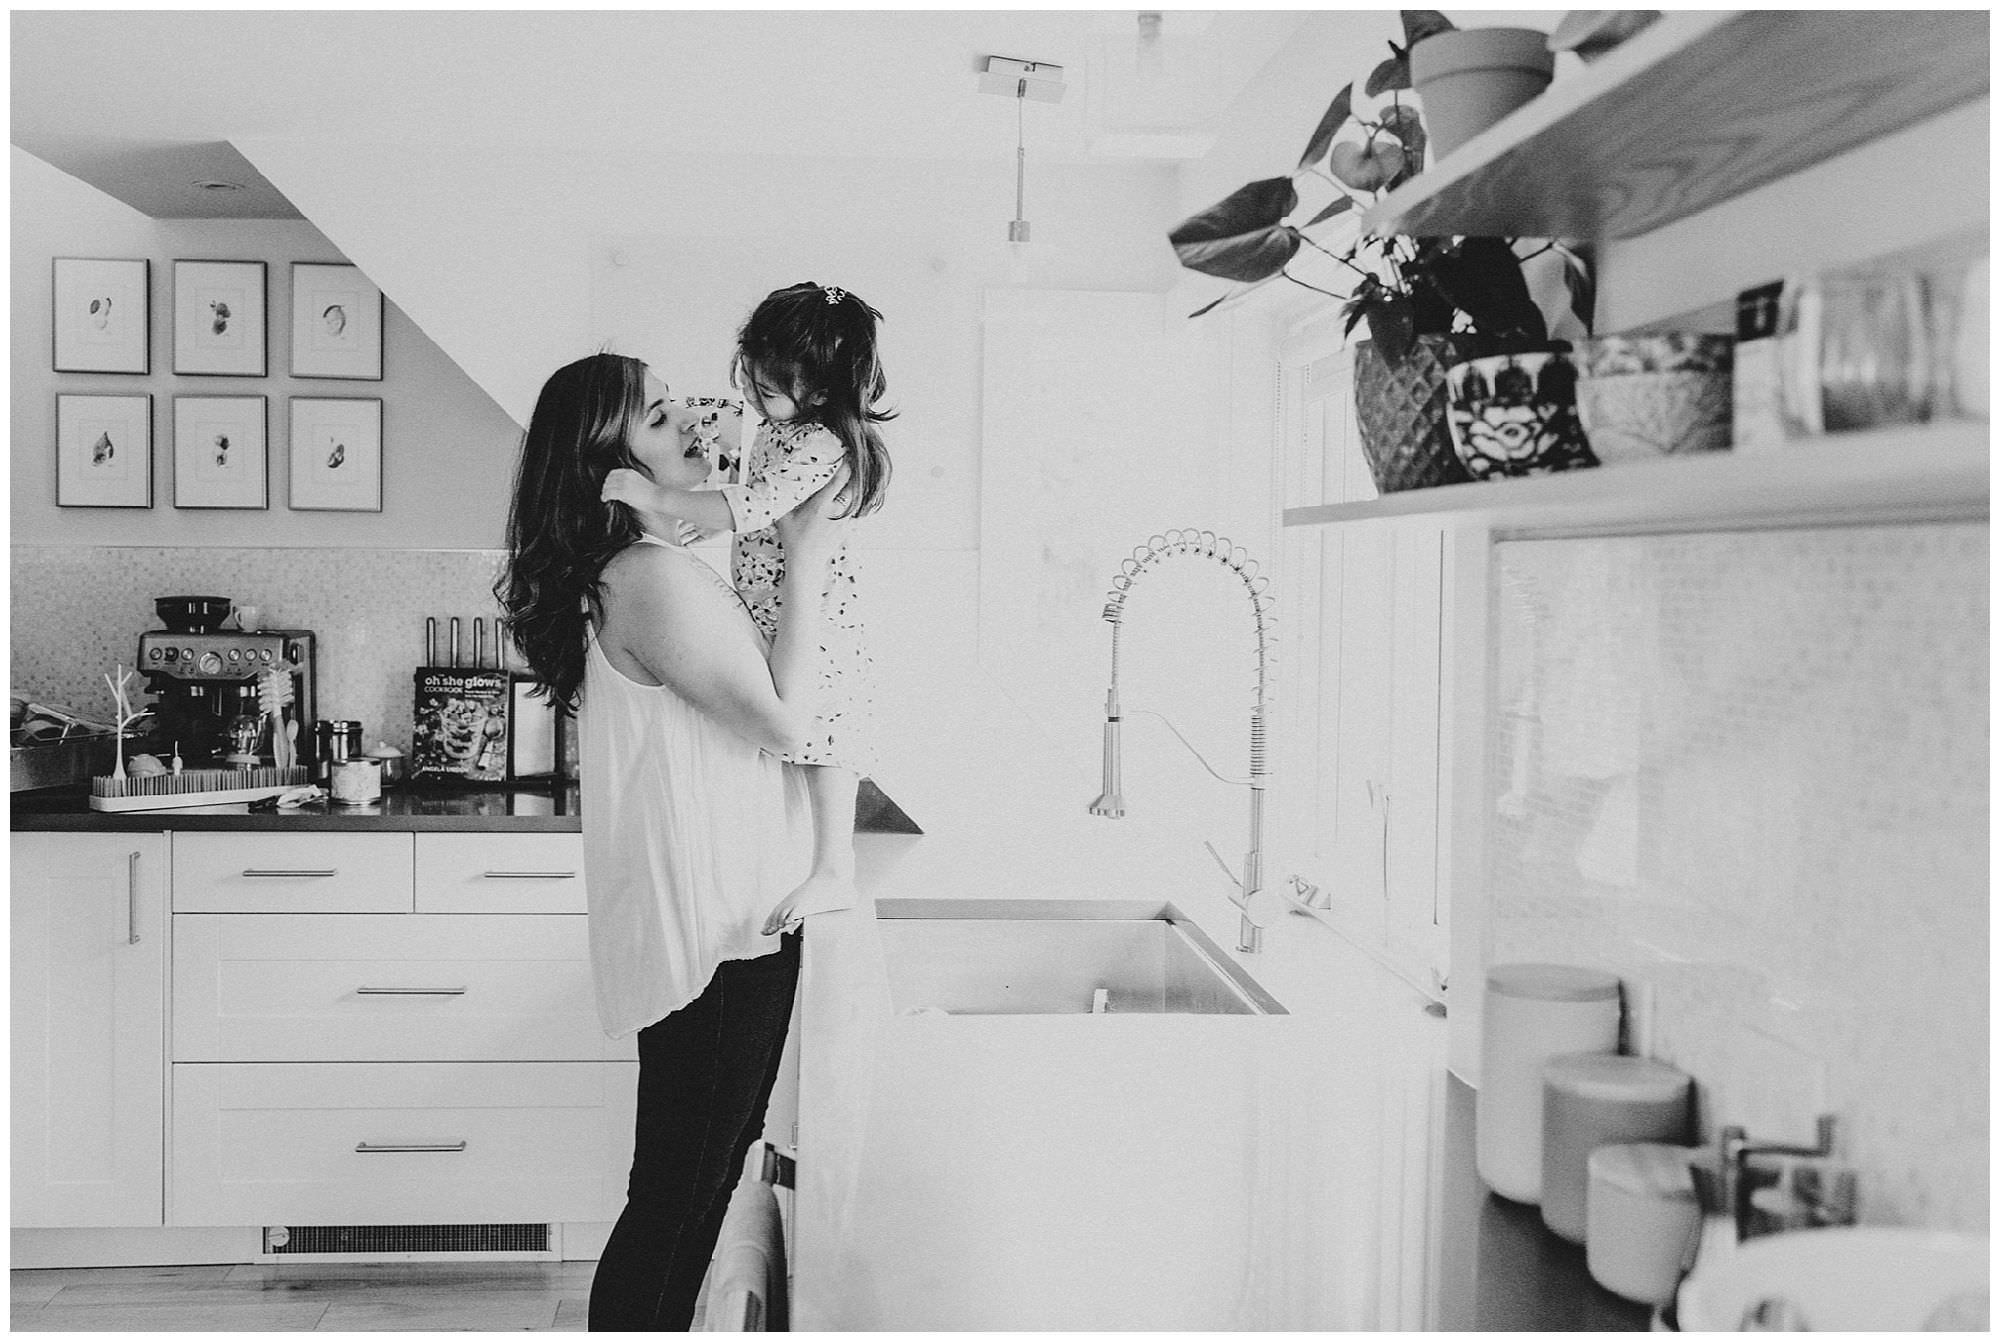 mother-and-daughter-in-kitchen-lifestyle-session-Vancouver